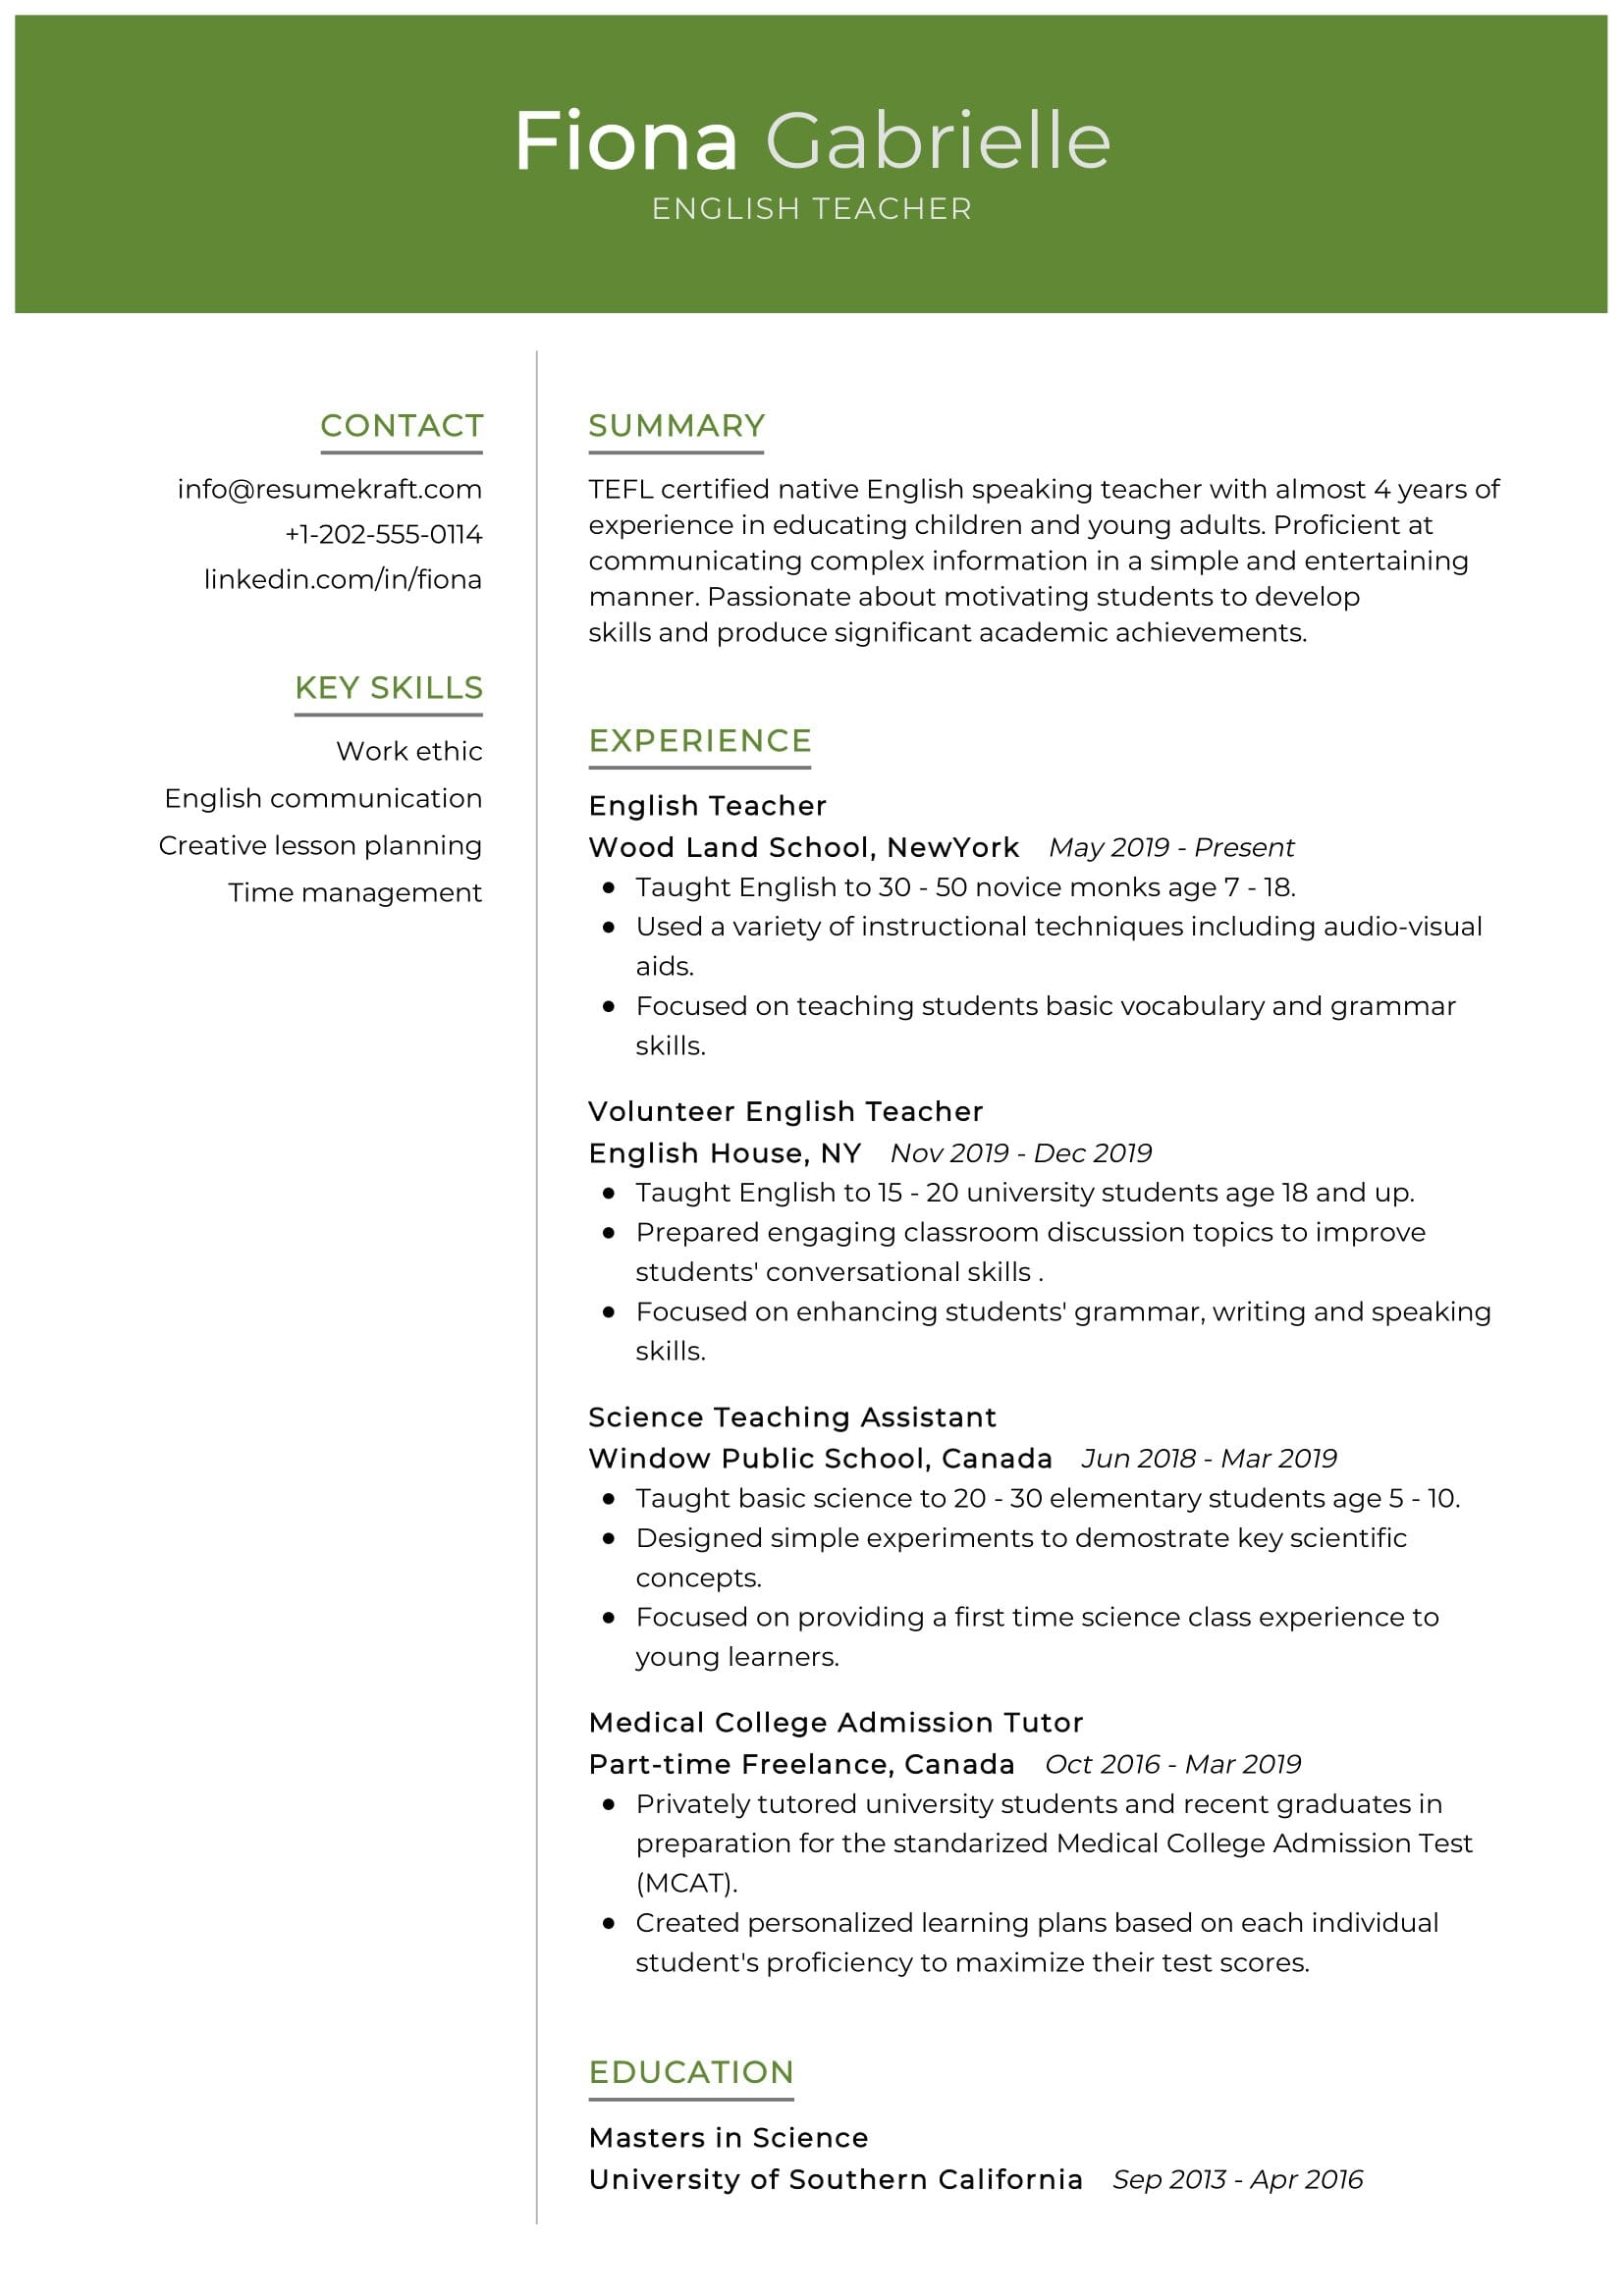 english teacher resume sample resumekraft skills for science managing interns on college Resume Skills For Science Teacher Resume